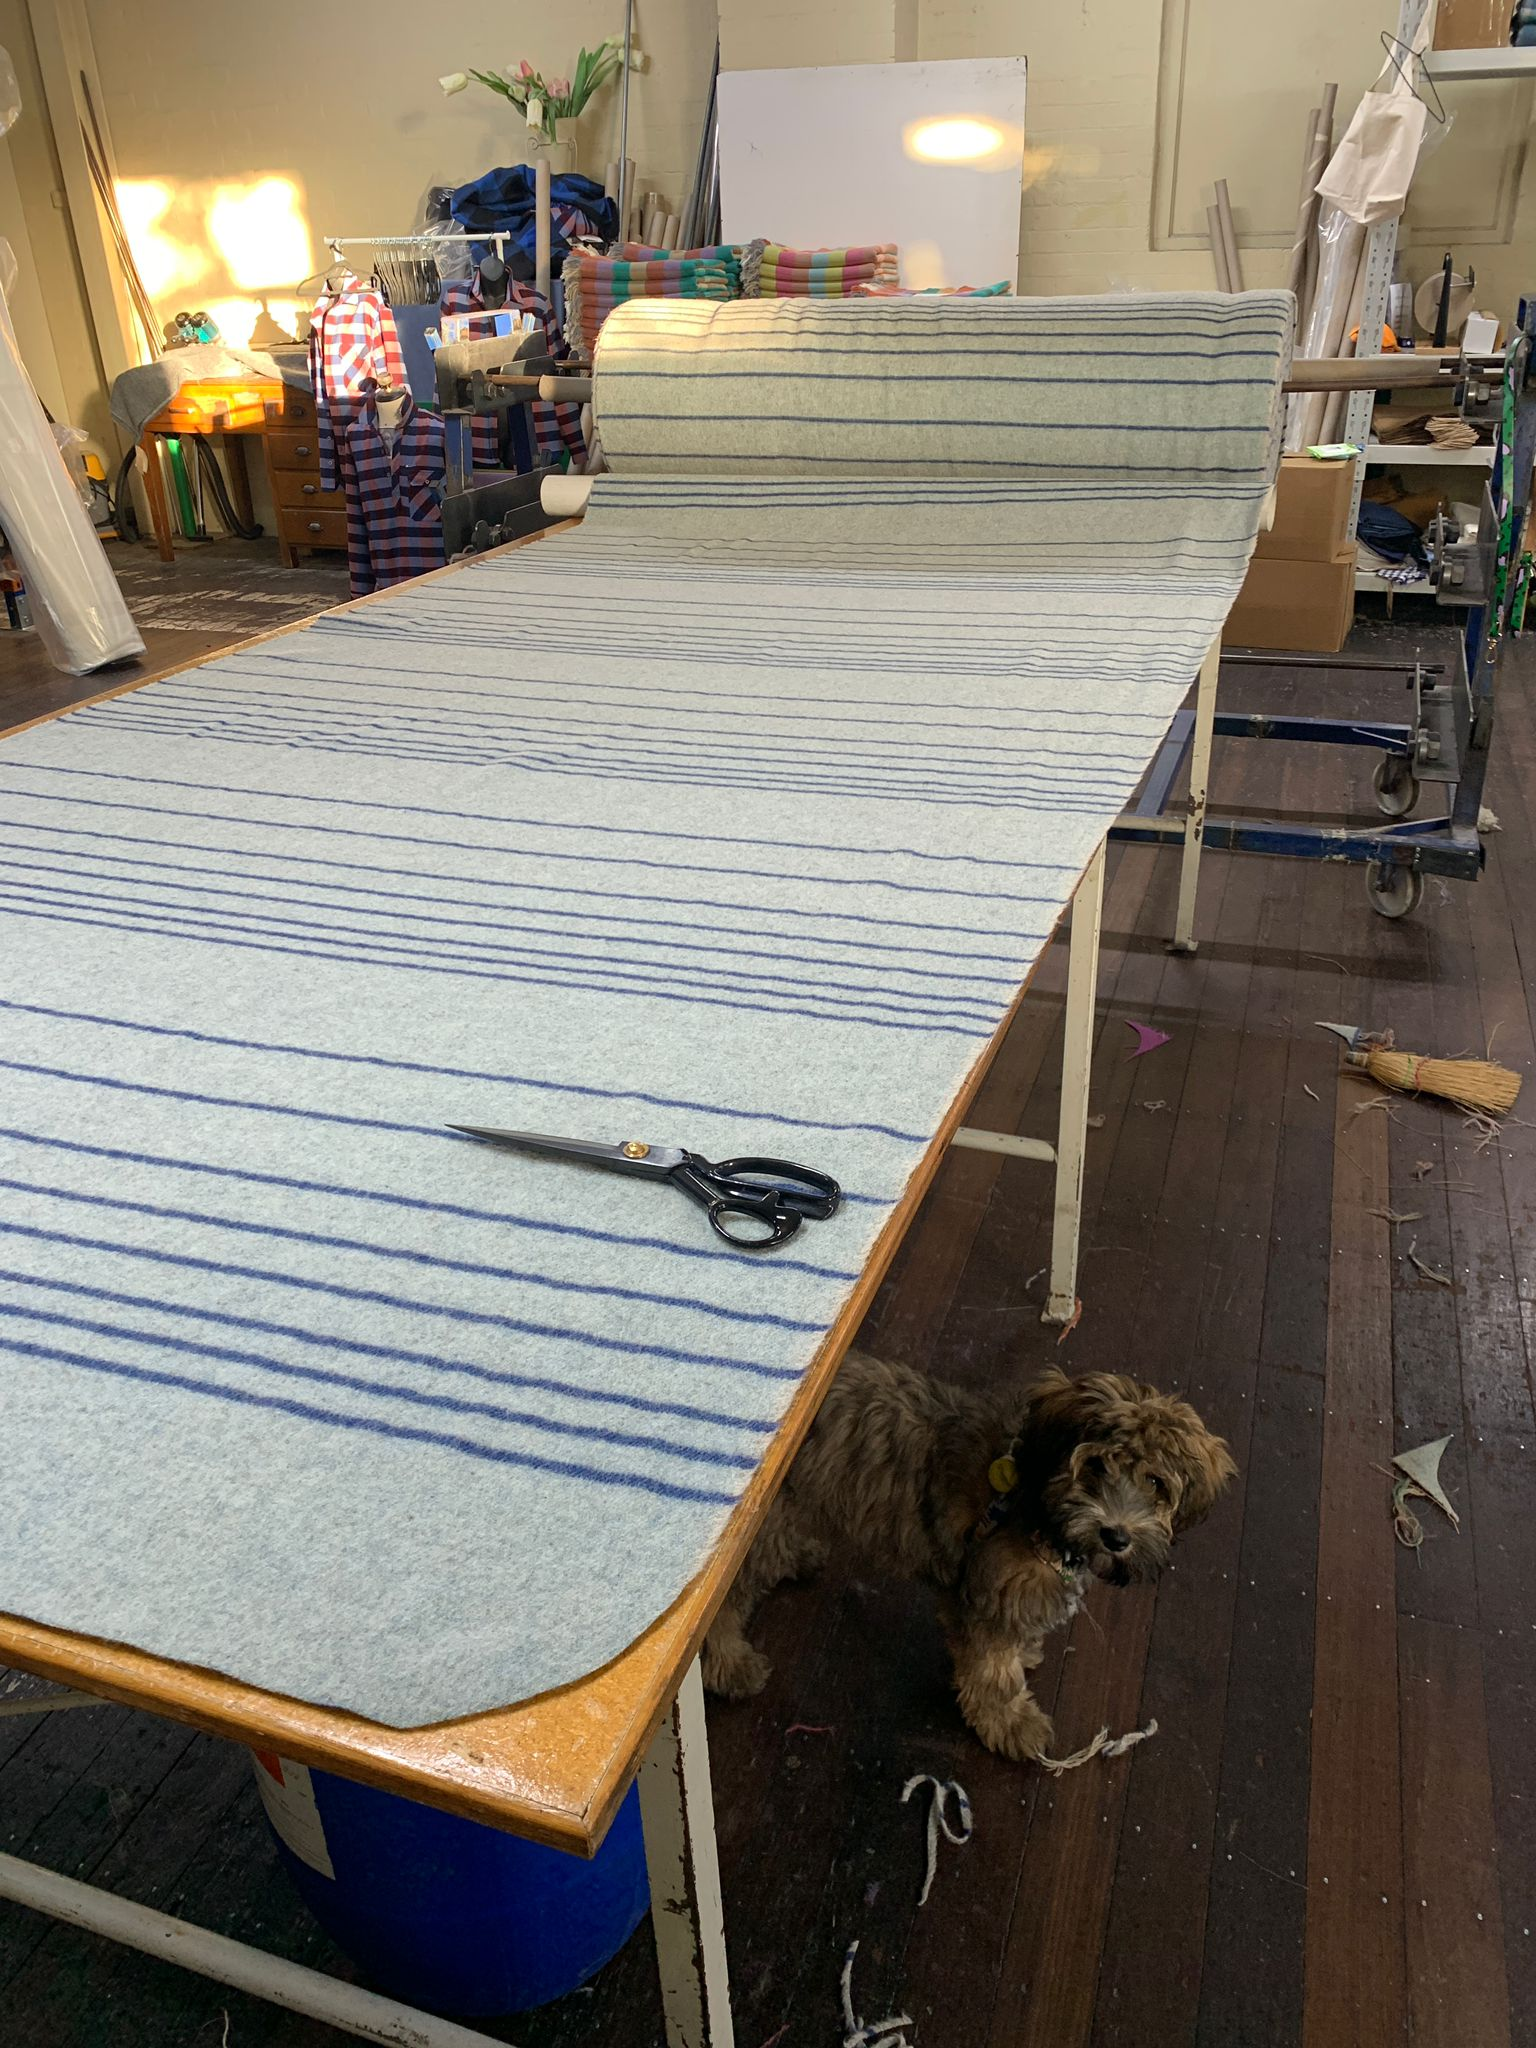 The Swell blanket on the cutting table at the mill